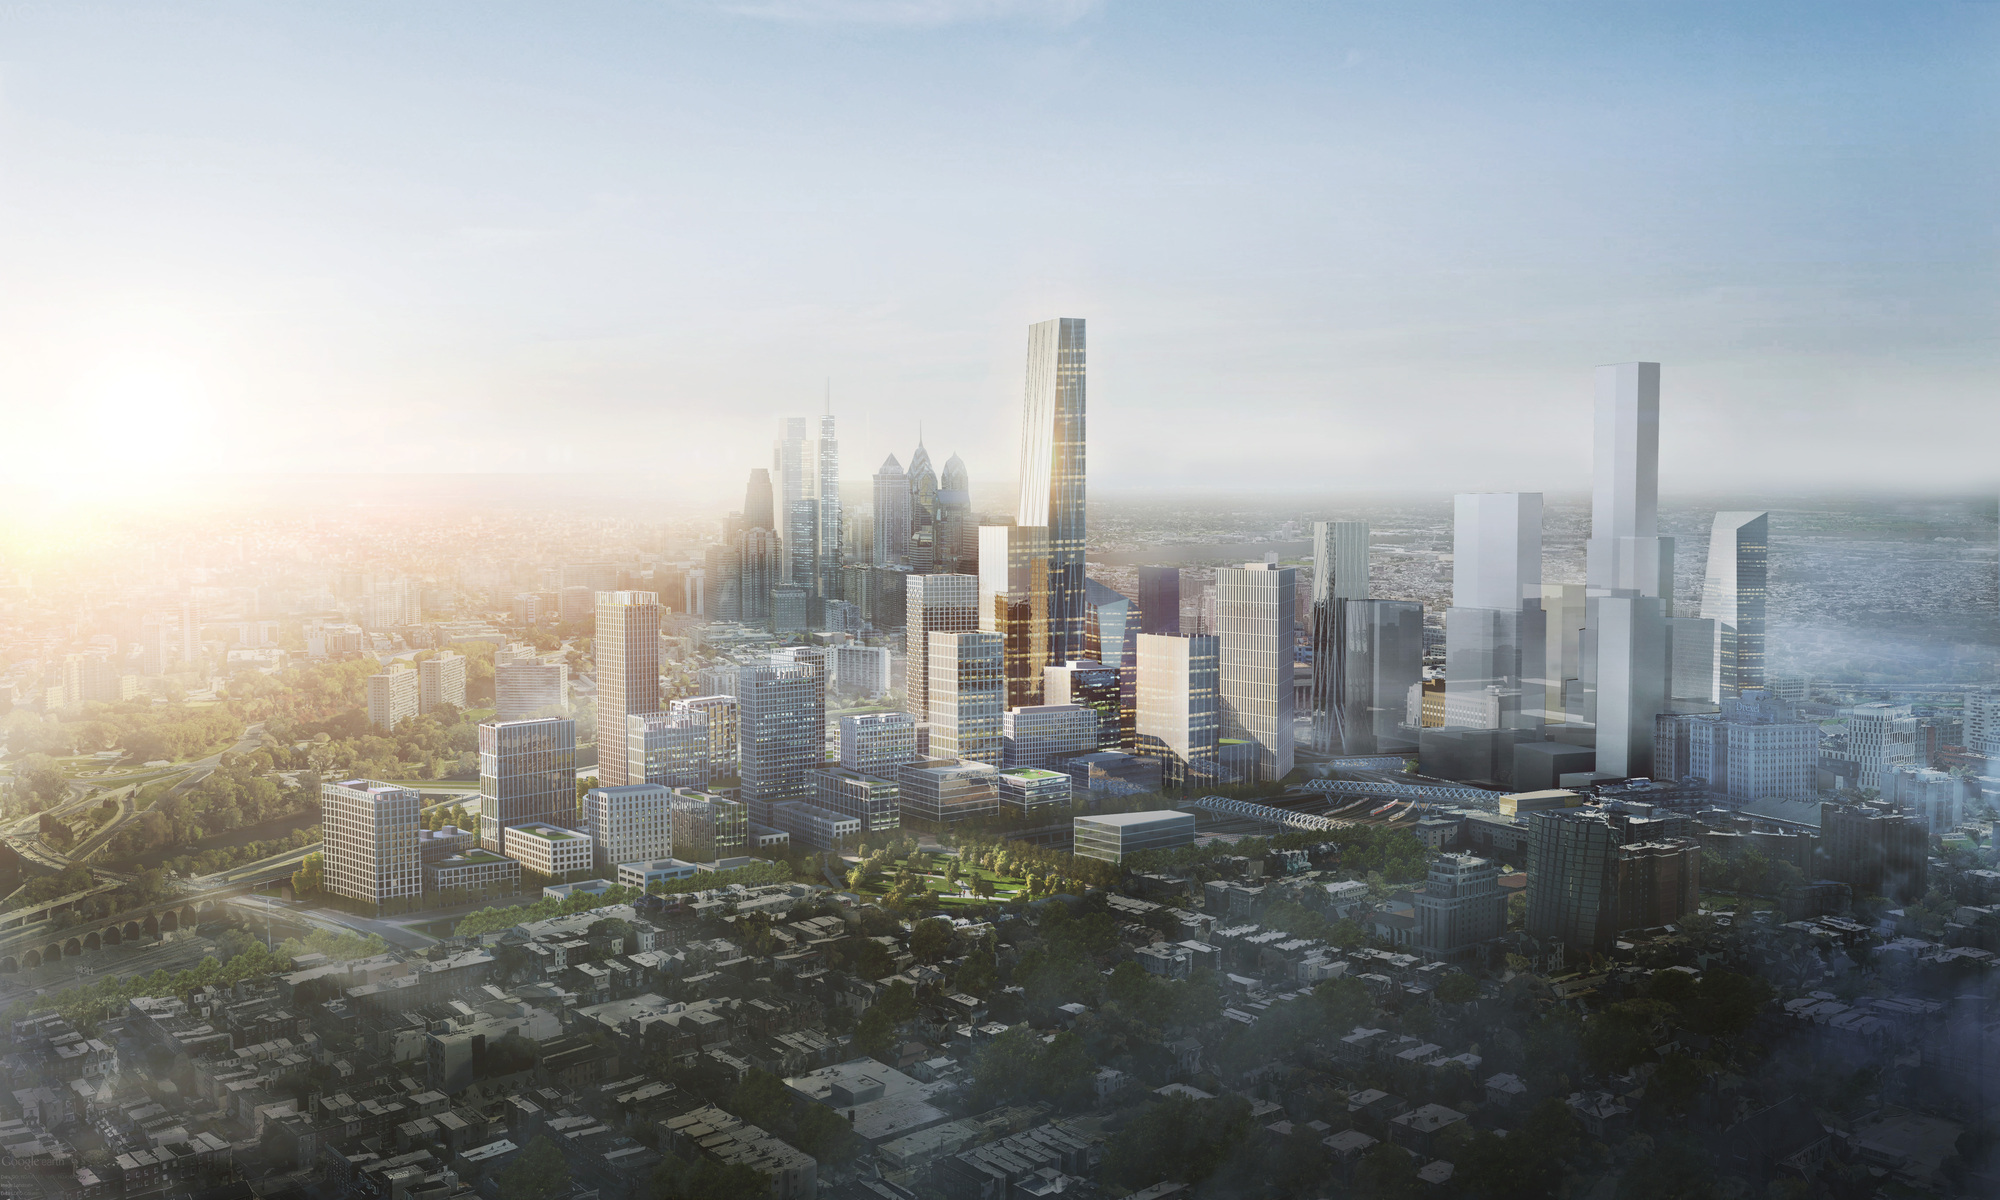 Gallery Of Som Reveals Plans For New Urban District Around Philadelphia S 30th Street Station 4